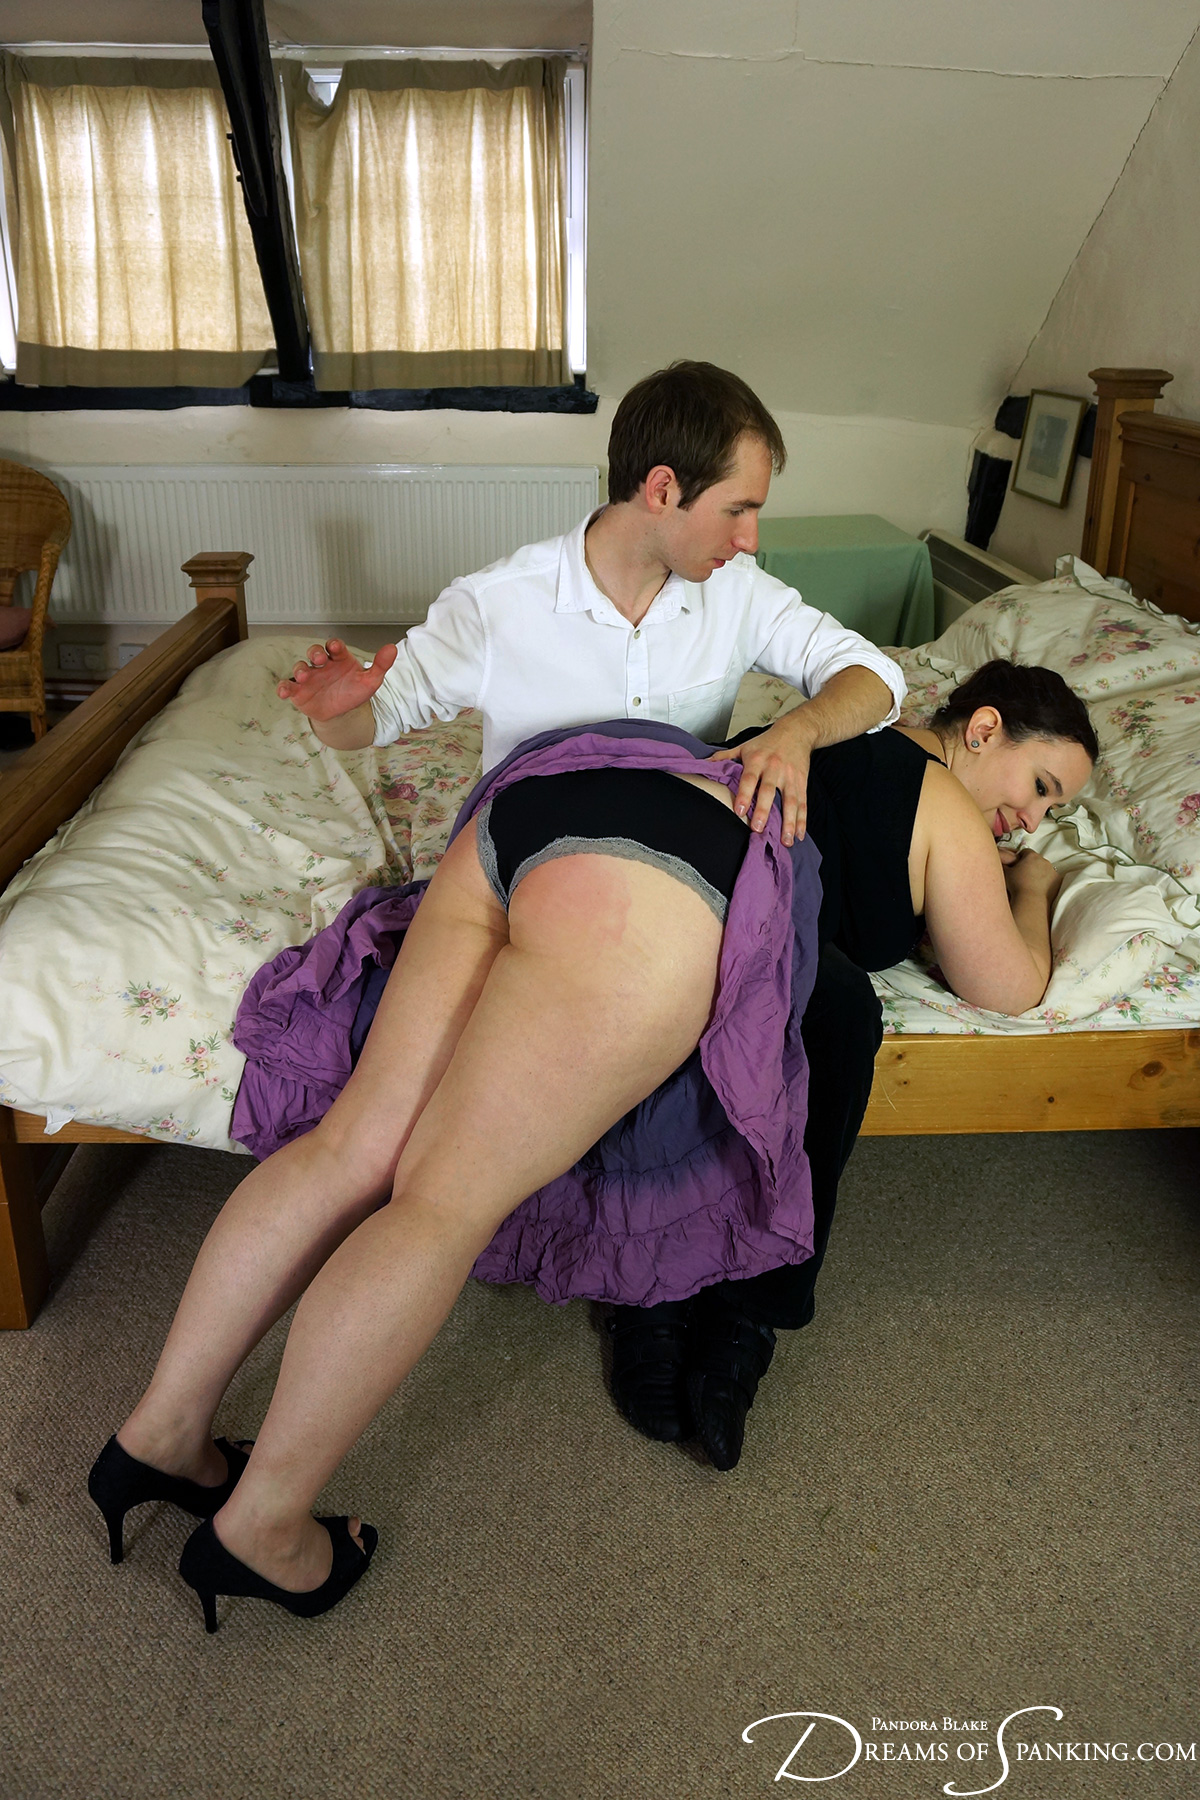 Andrew Shada and Nimue Allen at Dreams of Spanking